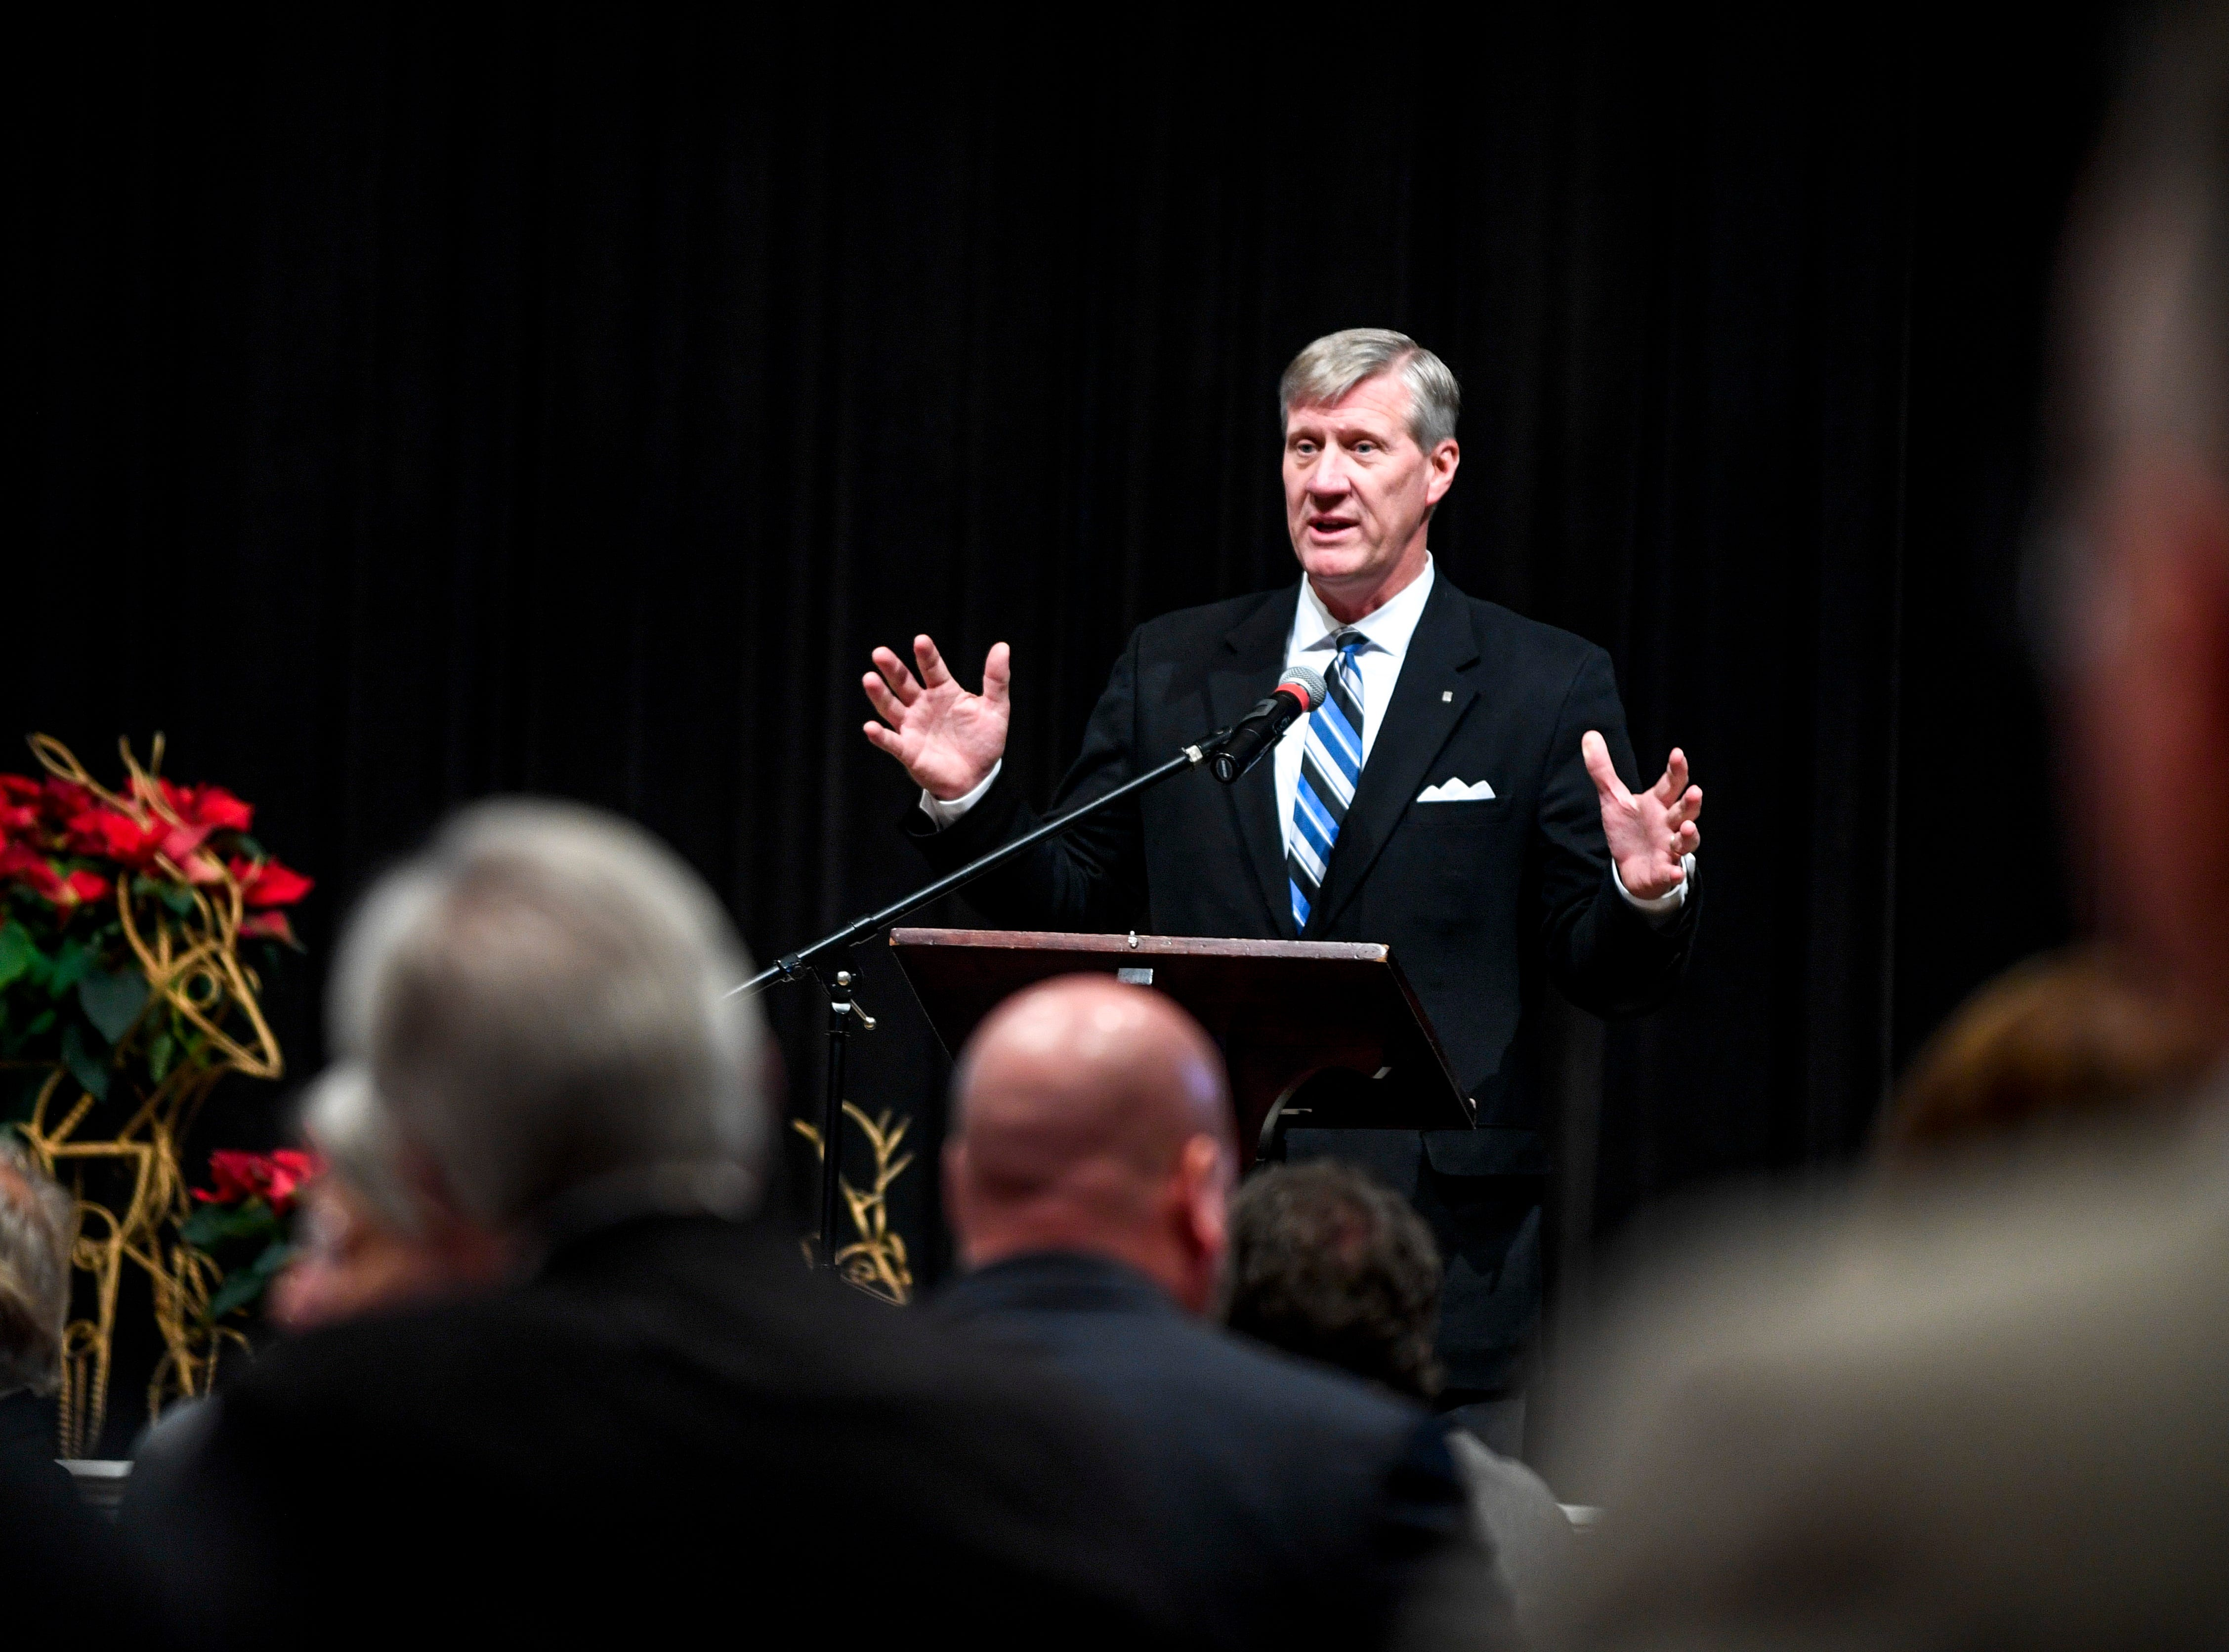 Doug Roth speaks at the podium during the monthly First Friday Forum at First United Methodist Church in Jackson, Tenn., on Friday, Jan. 4, 2019.